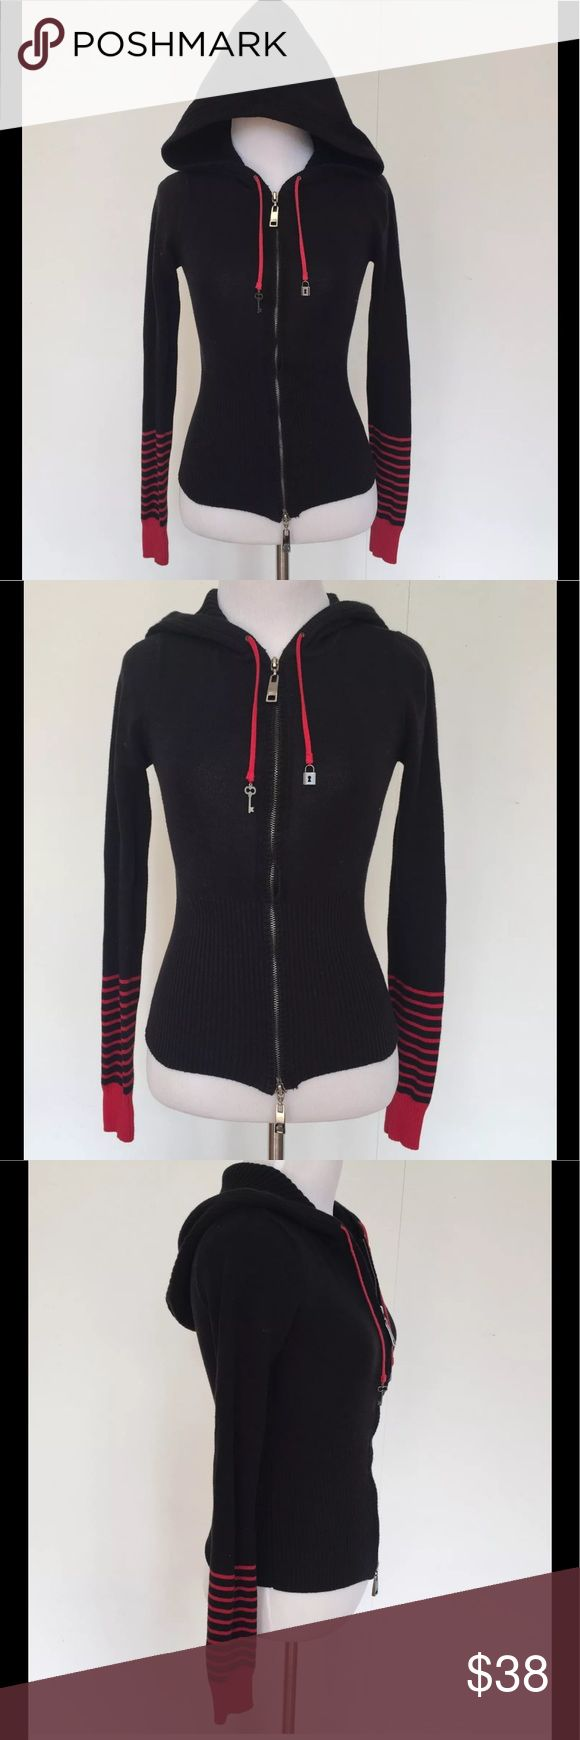 """Jennifer Lopez JLO Black Red Zip Up Hoodie S Jennifer Lopez JLO Black Red Striped Knit Zip Up Hoodie Jacket Retro Striped S  Retro JLo hoodie! Thick knit bottom, hood and sleeves. Striped red and black sleeves. Double zipper and drawstrings with charms on the end.   Size: Small Bust (flat): 14.5""""  Length (from shoulder): 25""""  Sleeve (from armpit) 19.5""""   91% Cotton. 9% Nylon.  Please check out more hoodies and jackets in my closet! :) Jennifer Lopez Tops Sweatshirts & Hoodies"""